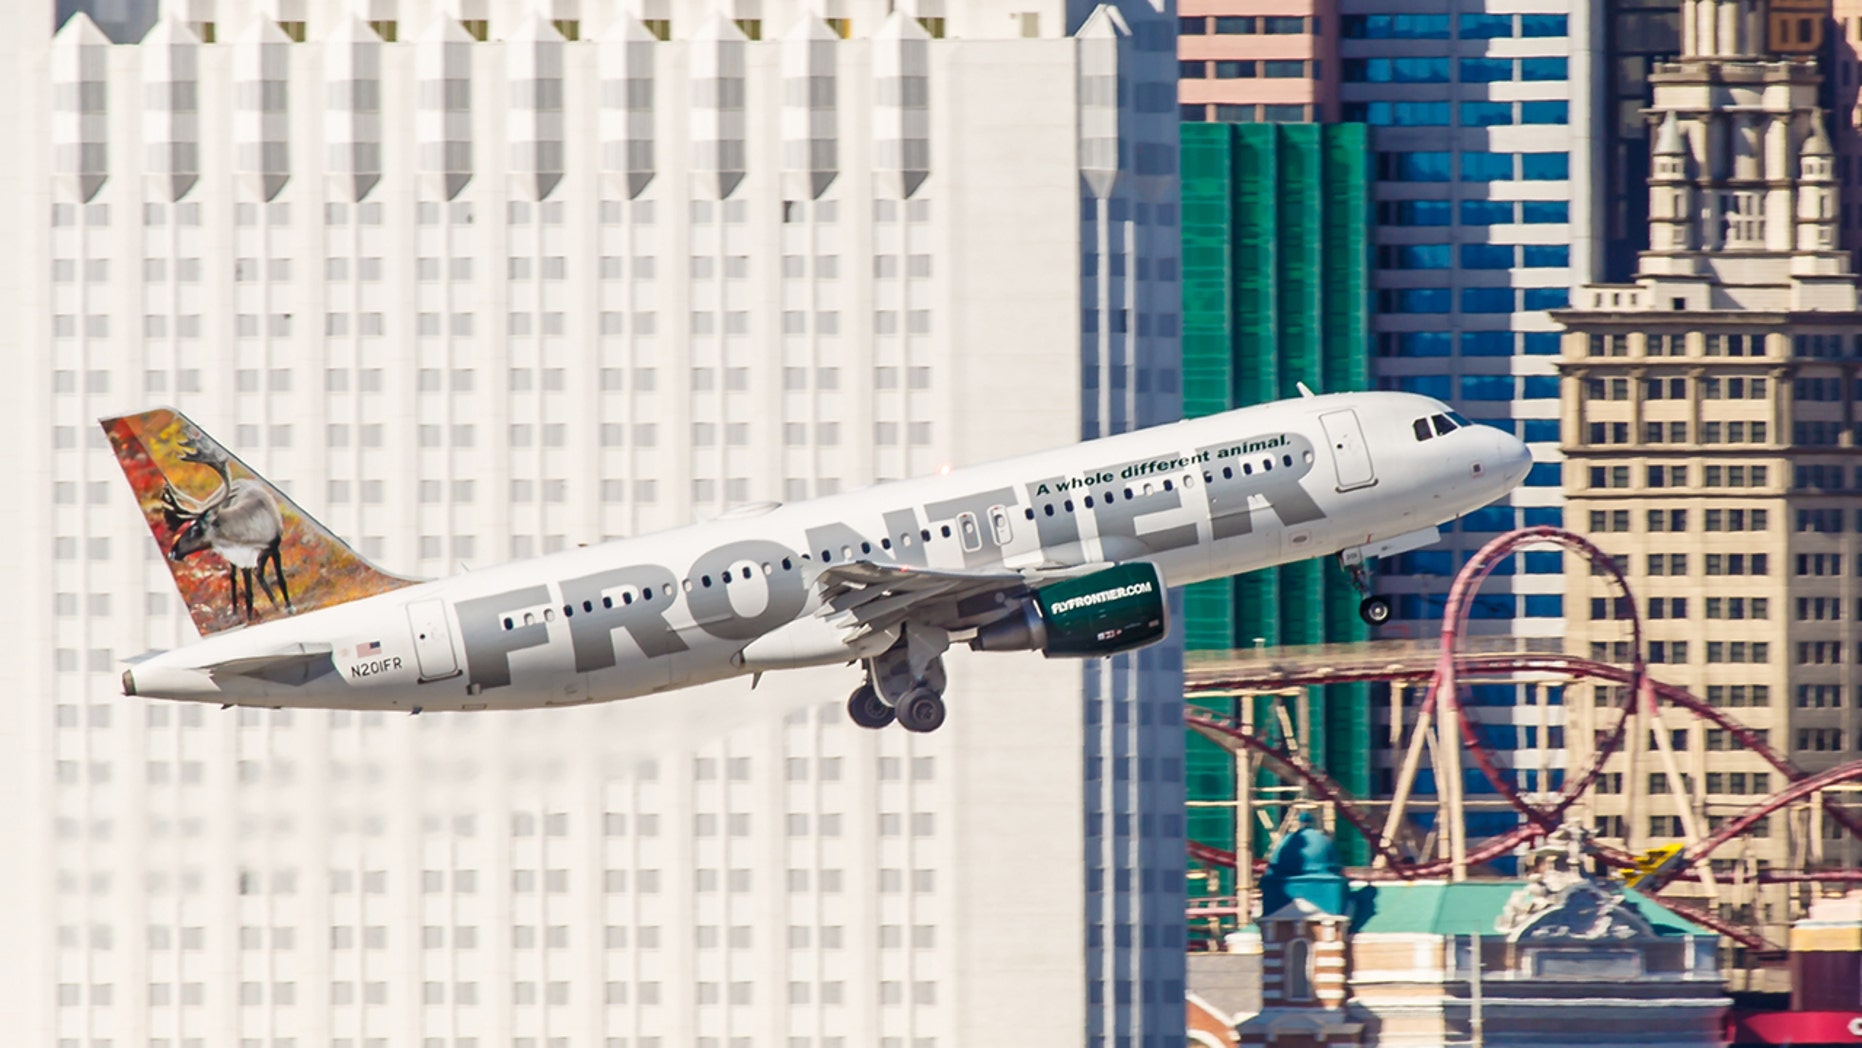 A Frontierplane had to make an emergency landing in Las Vegas after a piece of the engine cover broke off.